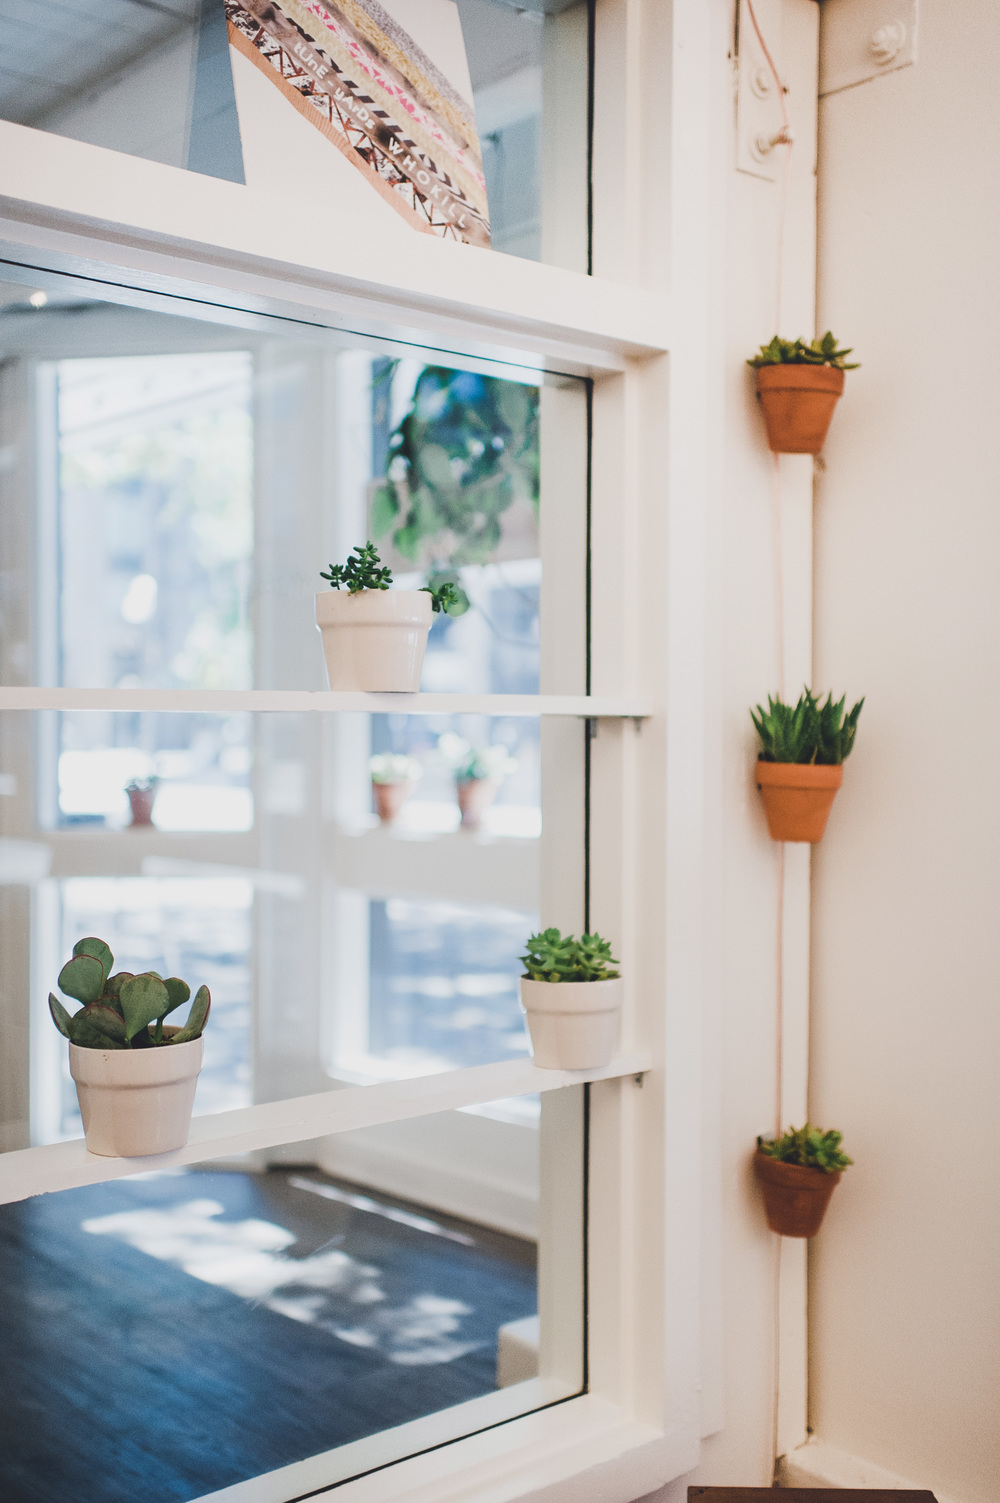 How To Care For Indoor Plants Succulents Ferns And Mosses The